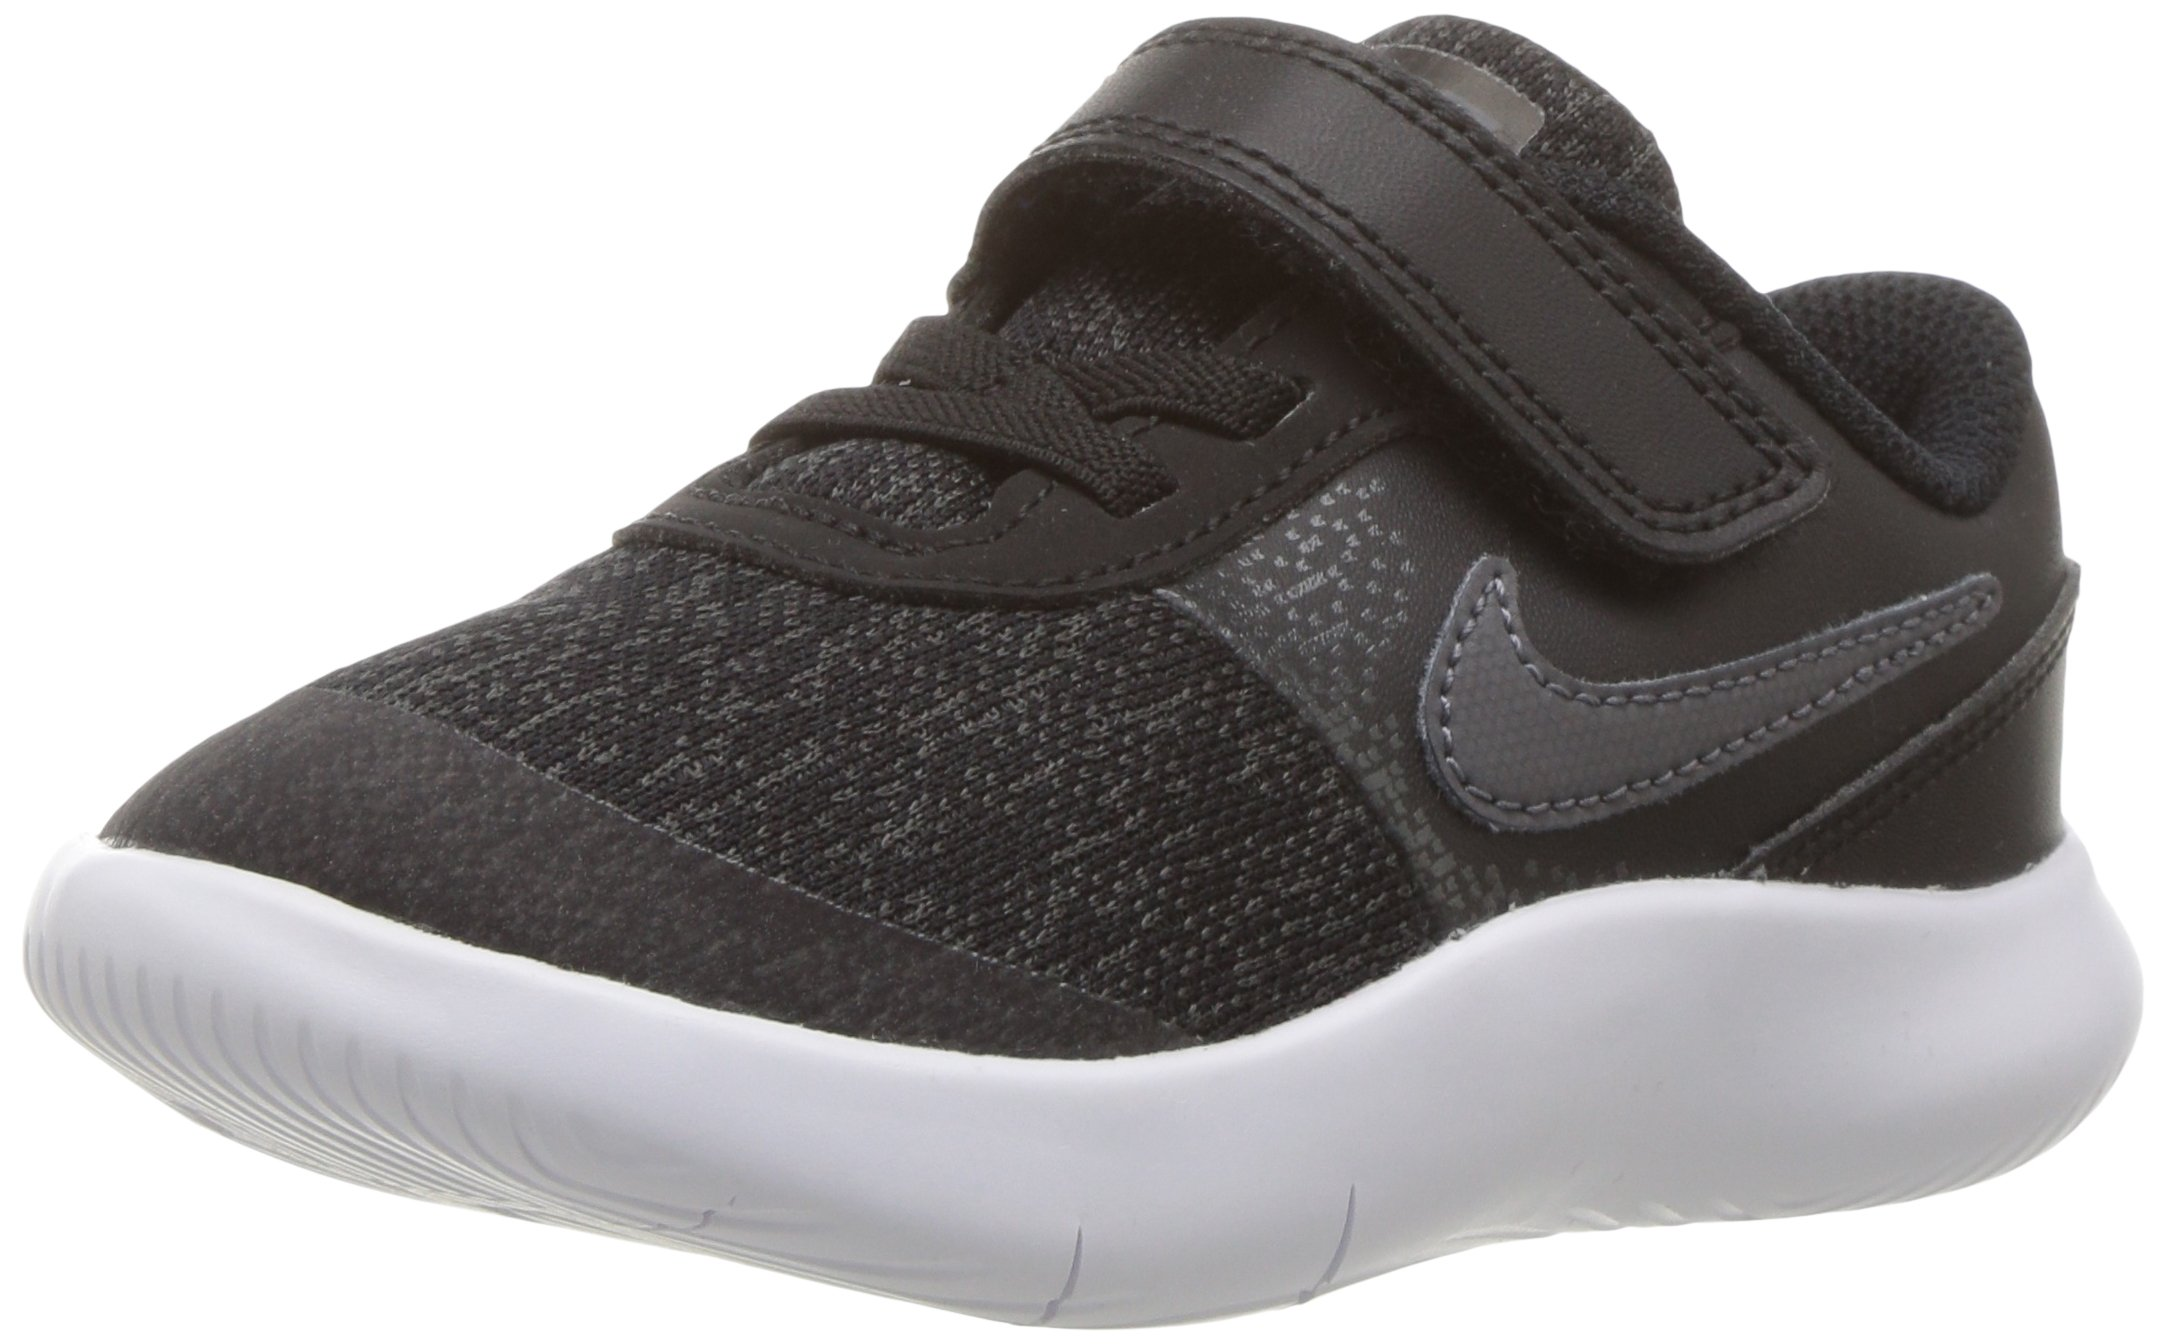 NIKE Toddler Flex Contact (TDV) Black DRK Gry Anthracite White Size 2